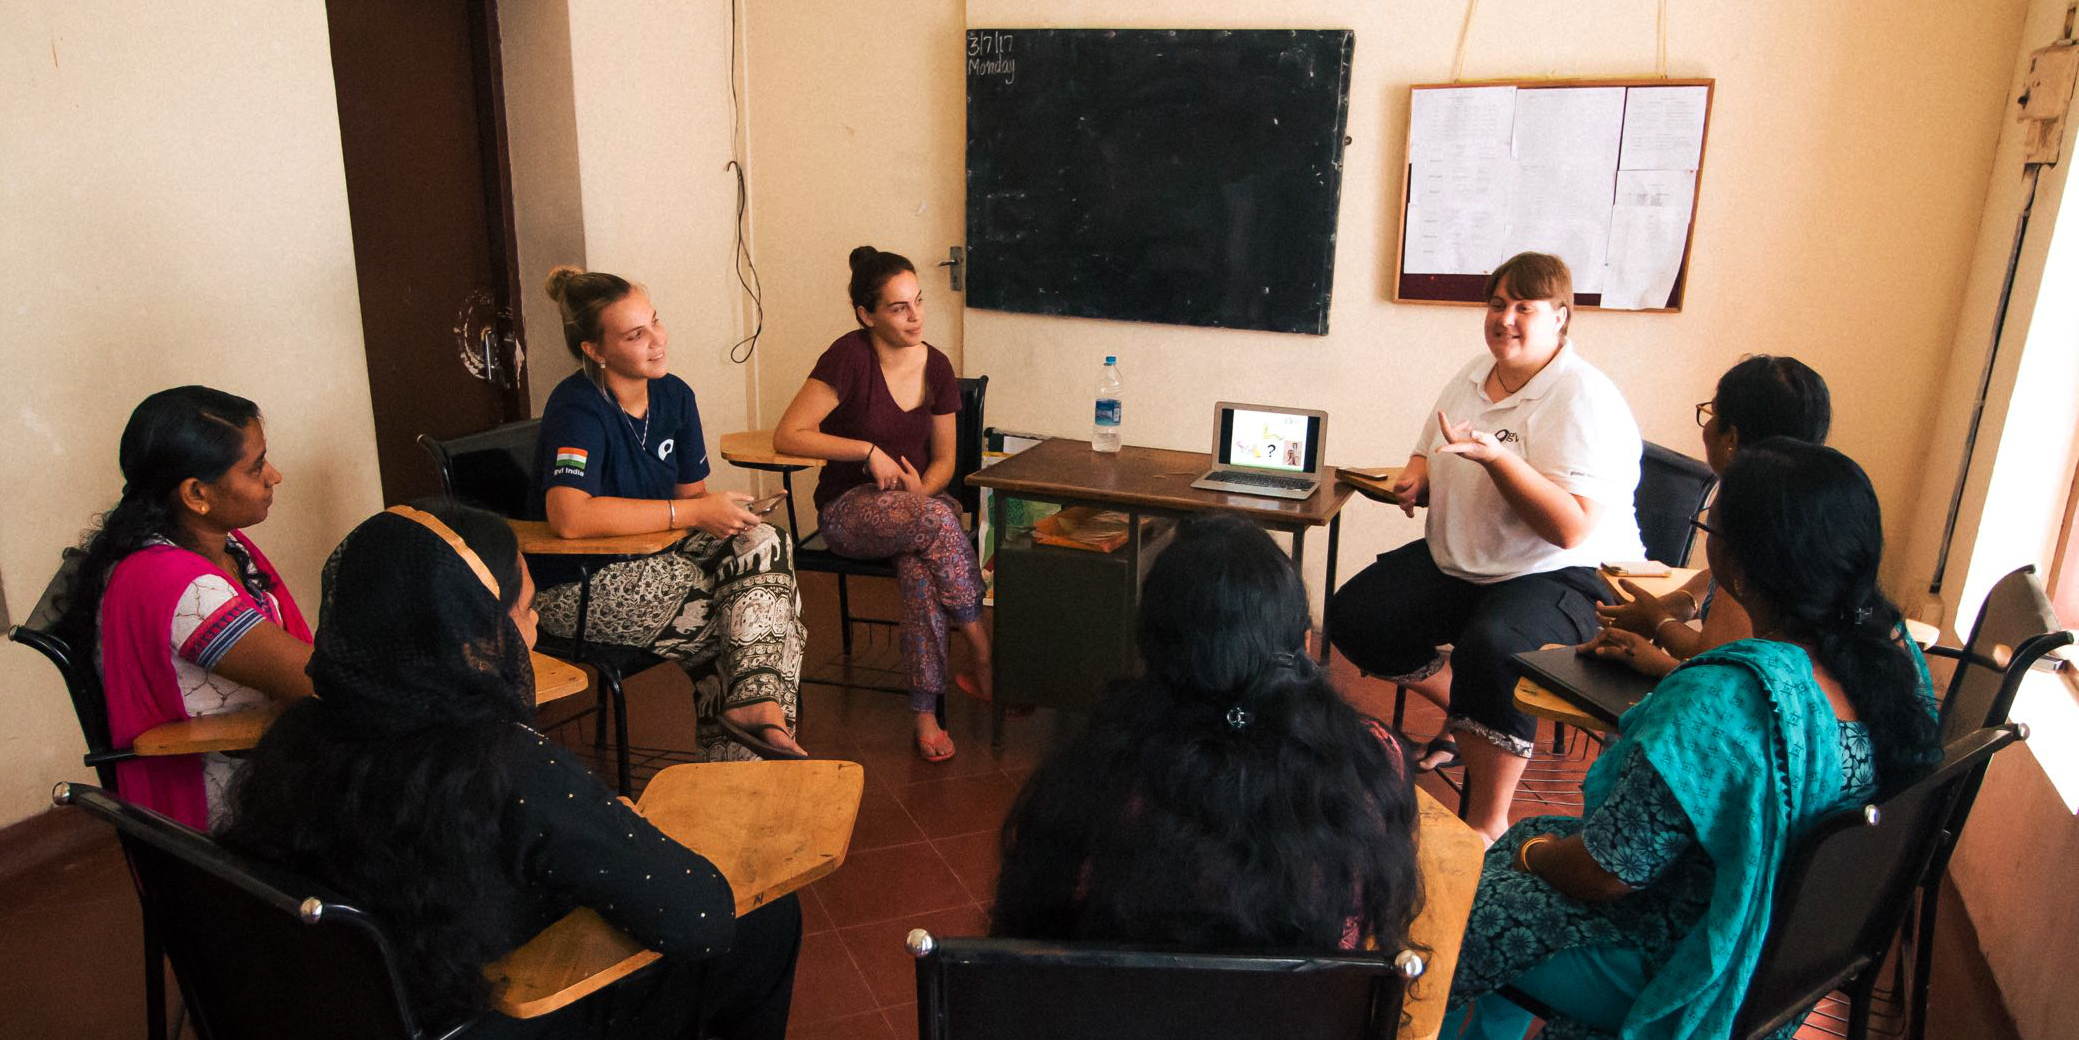 A GVI staff member leads a women's empowerment workshop in Kerala, India.